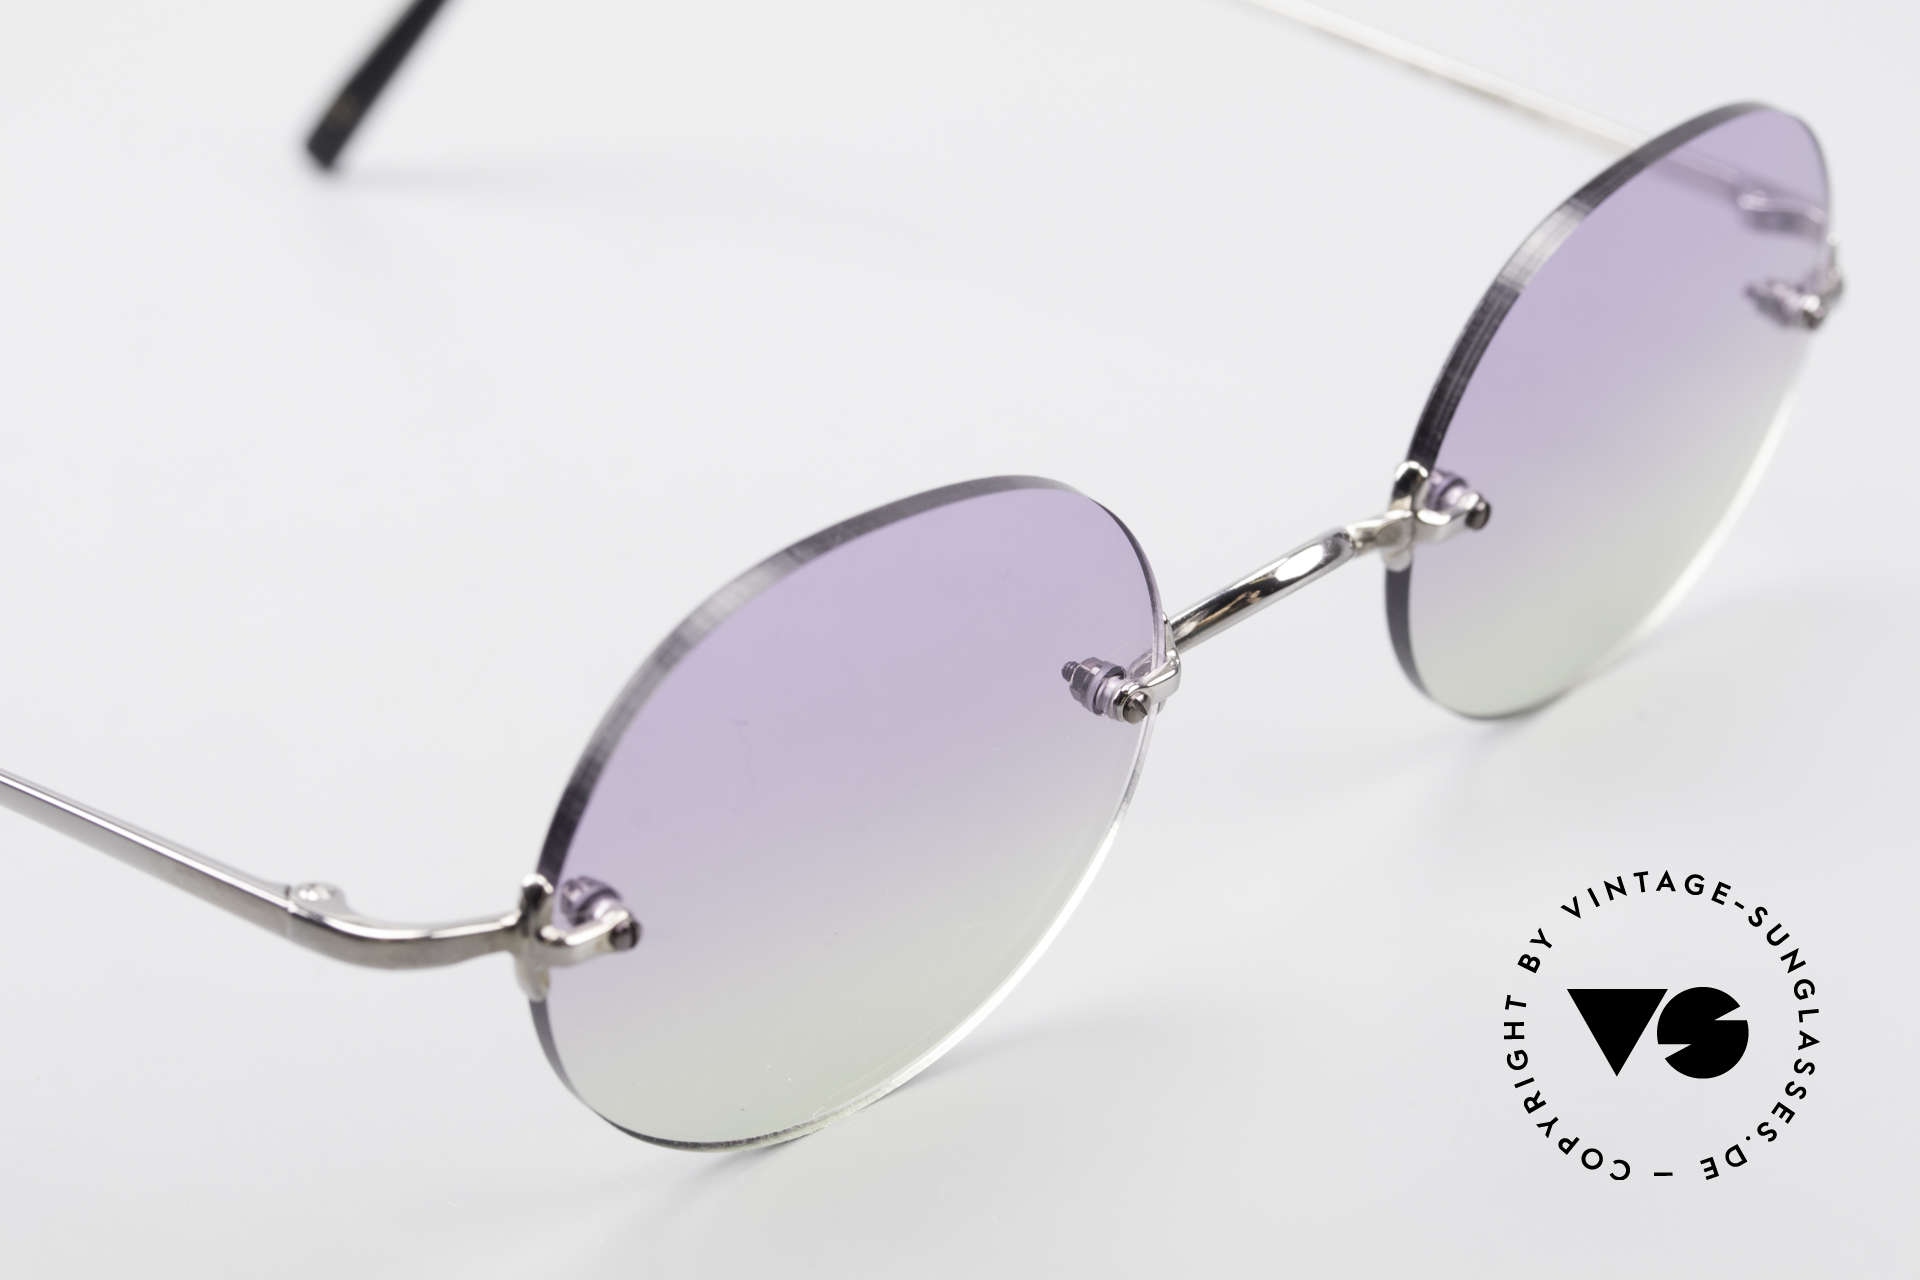 Freudenhaus Flemming Round Rimless Sunglasses, unworn (like all our rare vintage designer sunglasses), Made for Men and Women